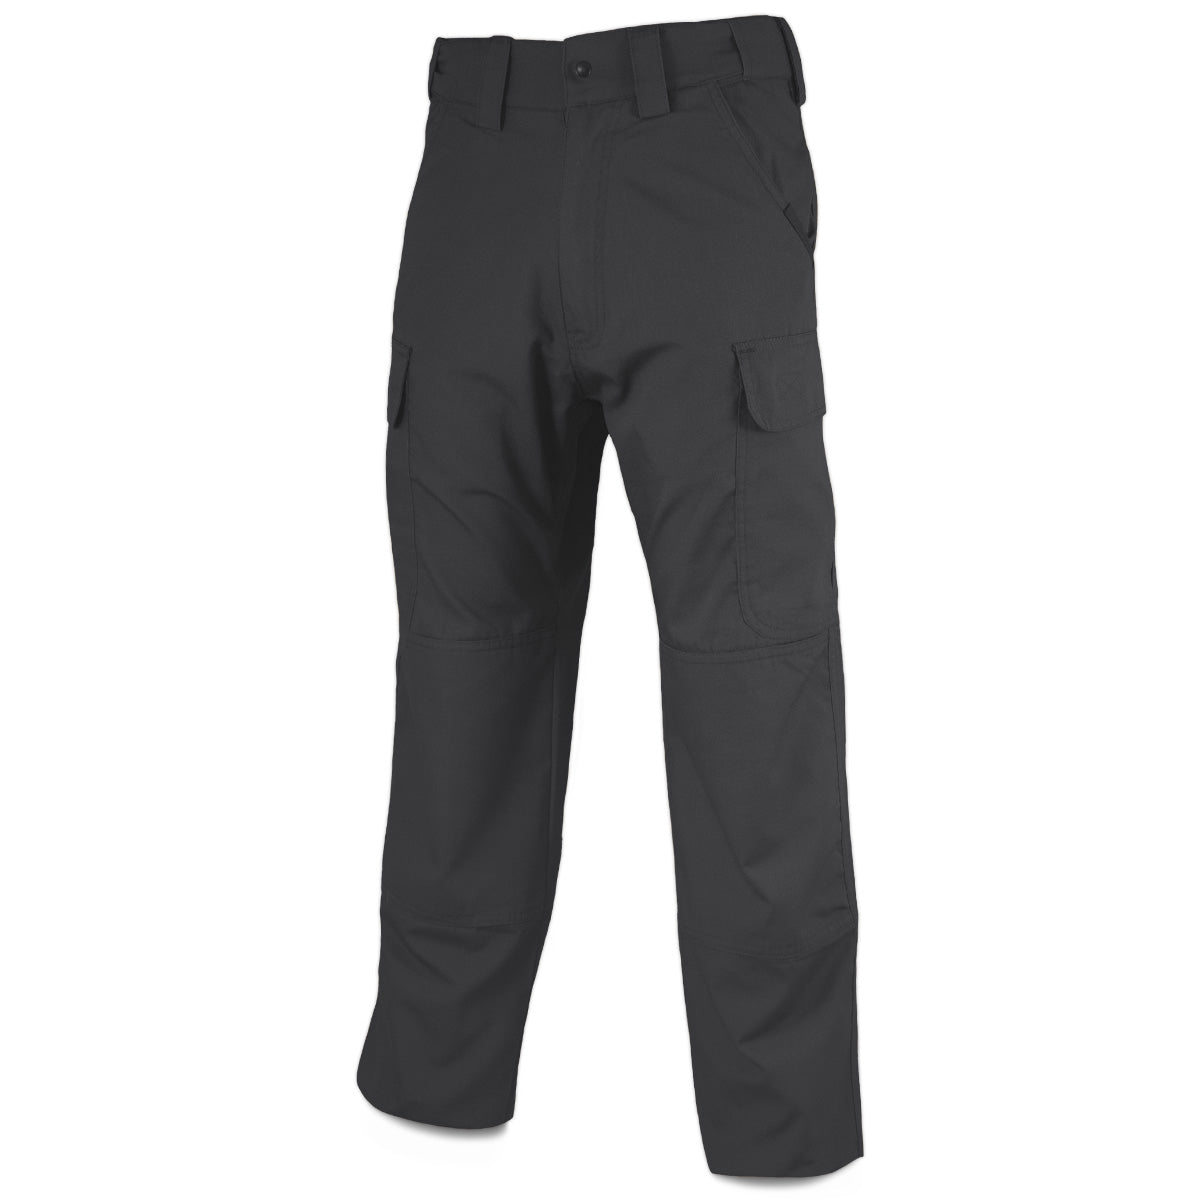 Incog Tactical Trousers Black | Bulldog Tactical Gear